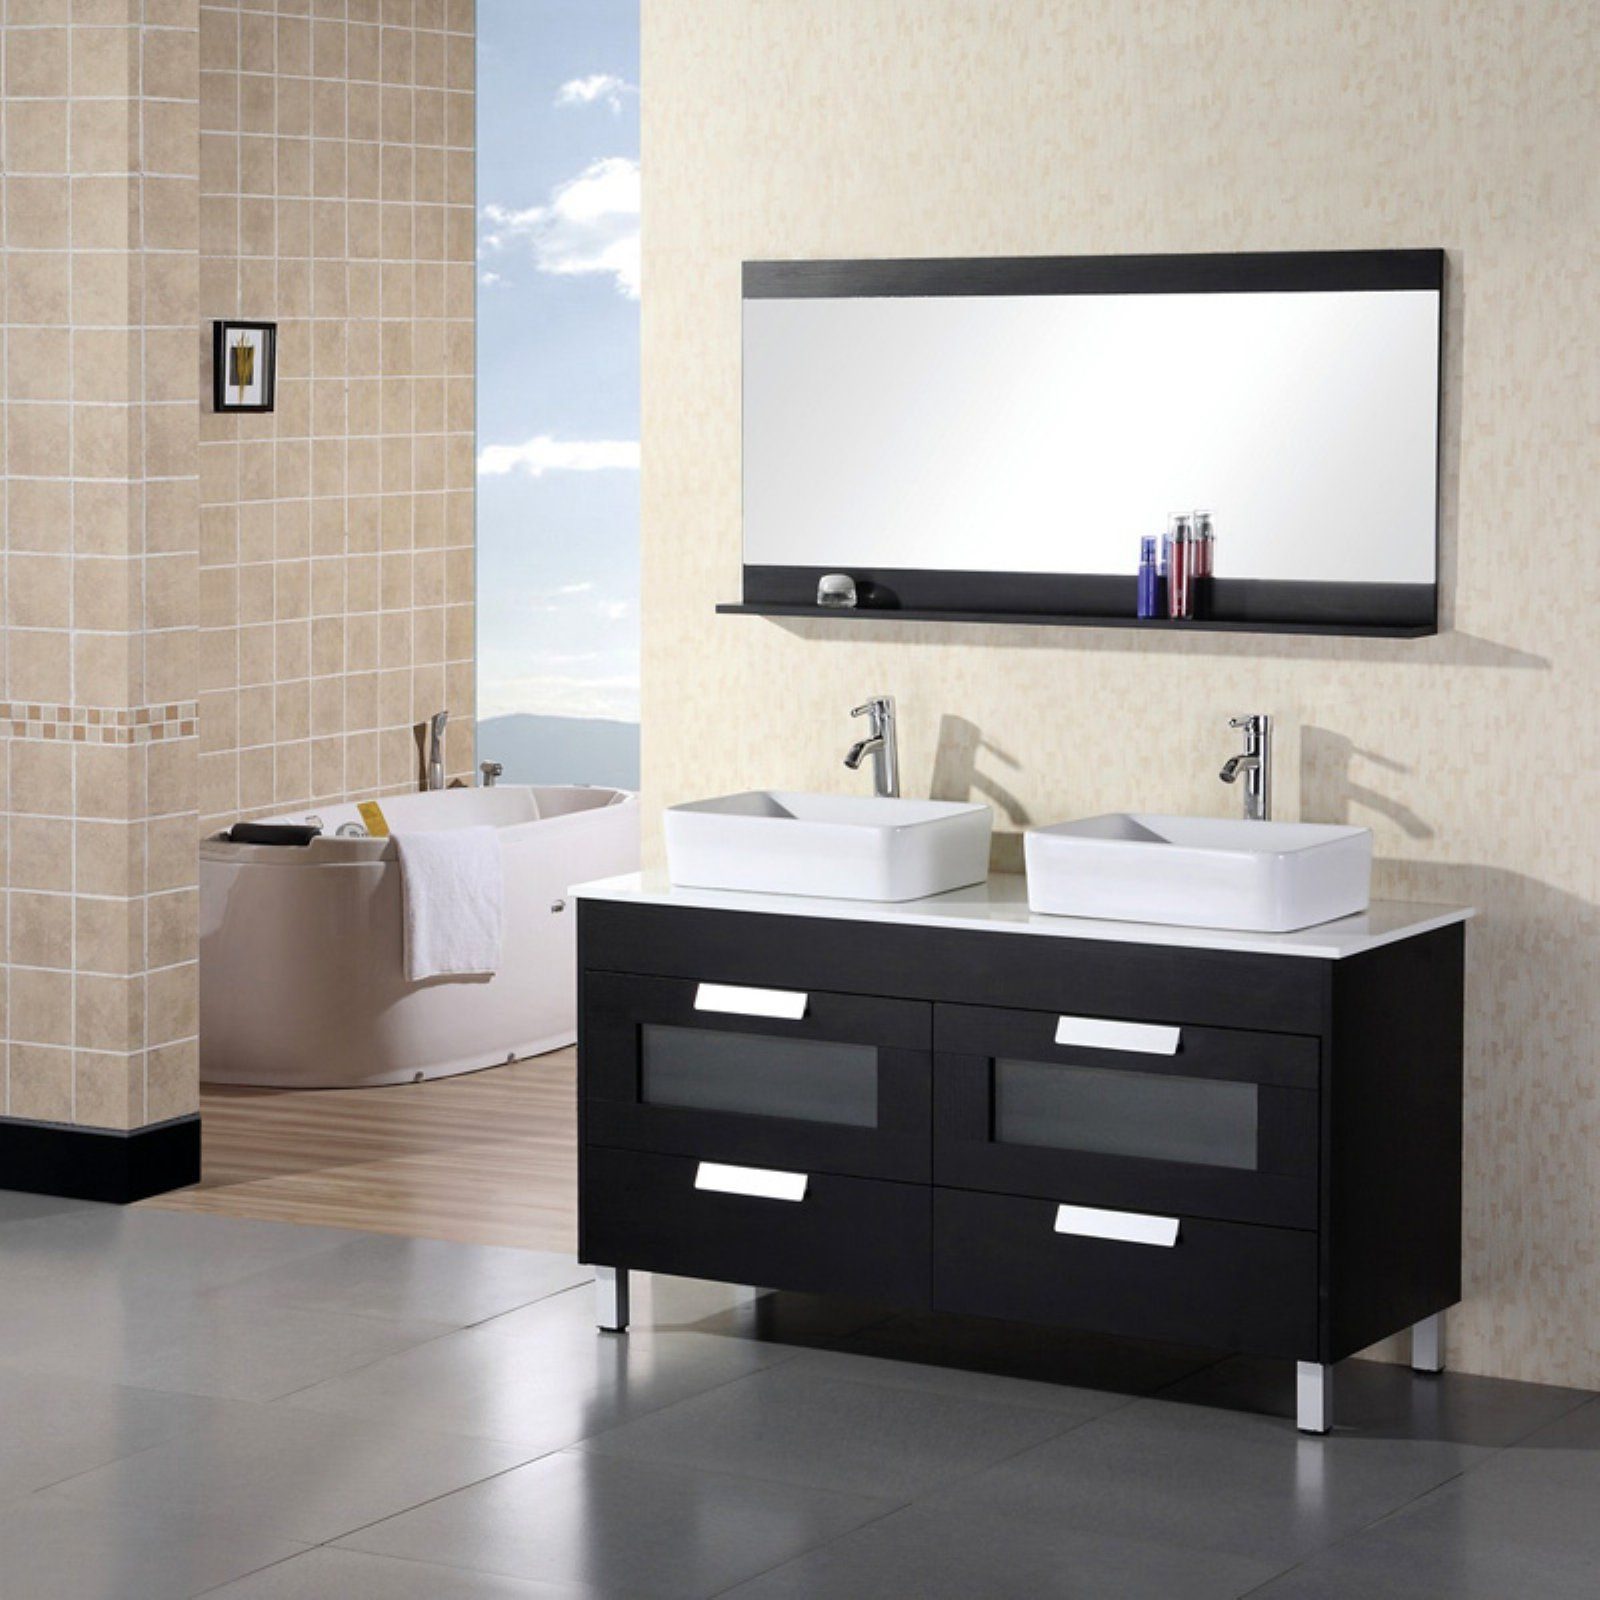 Design Element Dec019 Francesca 55 25 In Double Bathroom Vanity